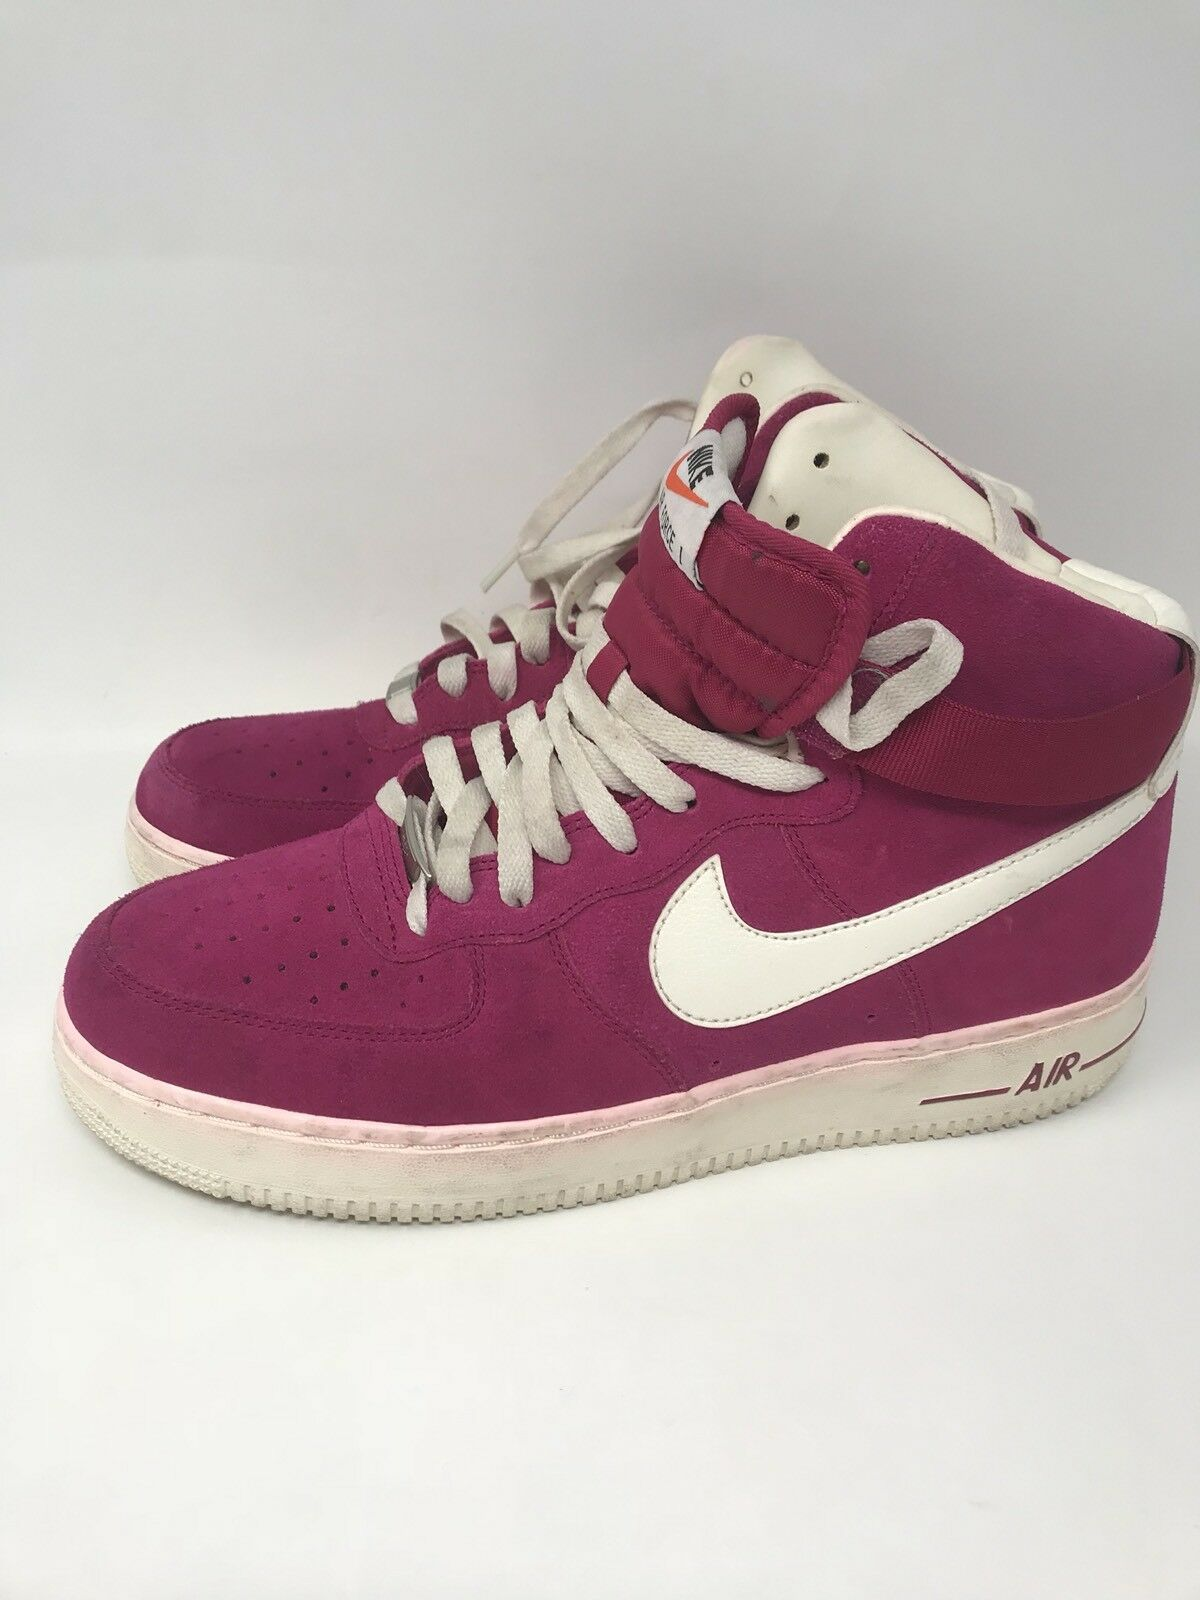 Rare Nike Air Force 1 High Blazer Pack shoes 315121-602 Fuchsia Pink sz 10 Suede